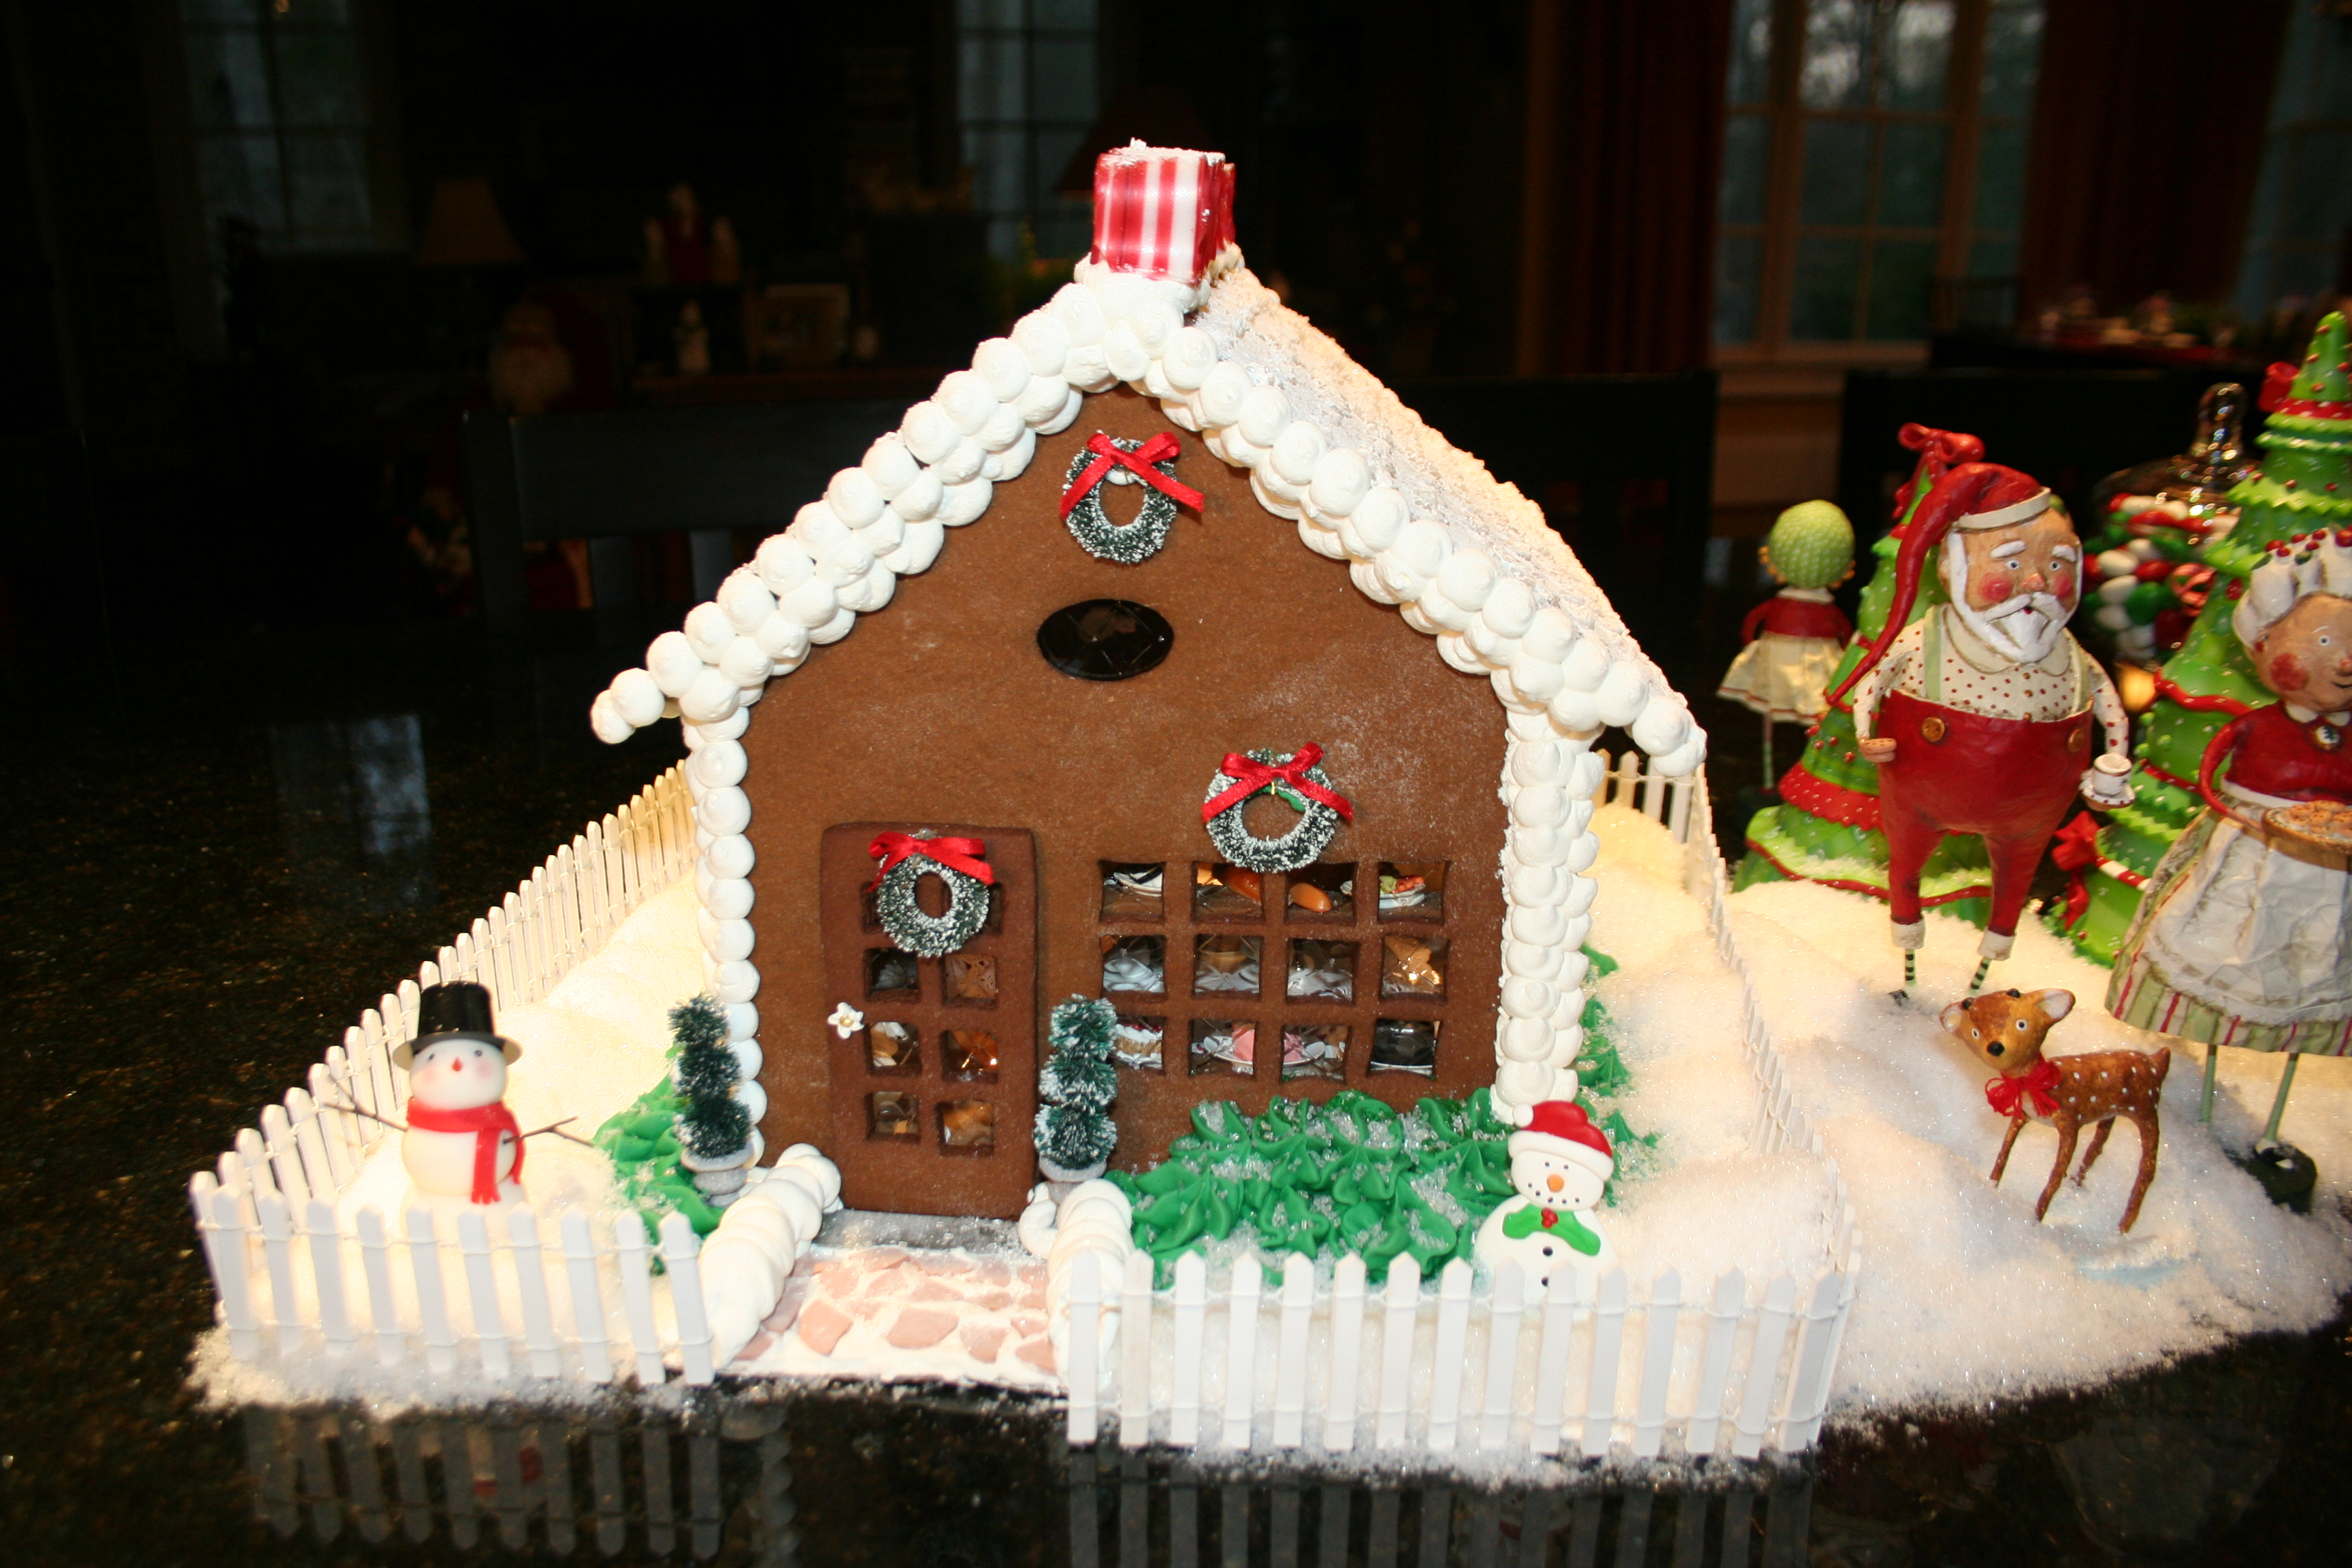 How To Make Your Own Gingerbread Houses Instructions Photo